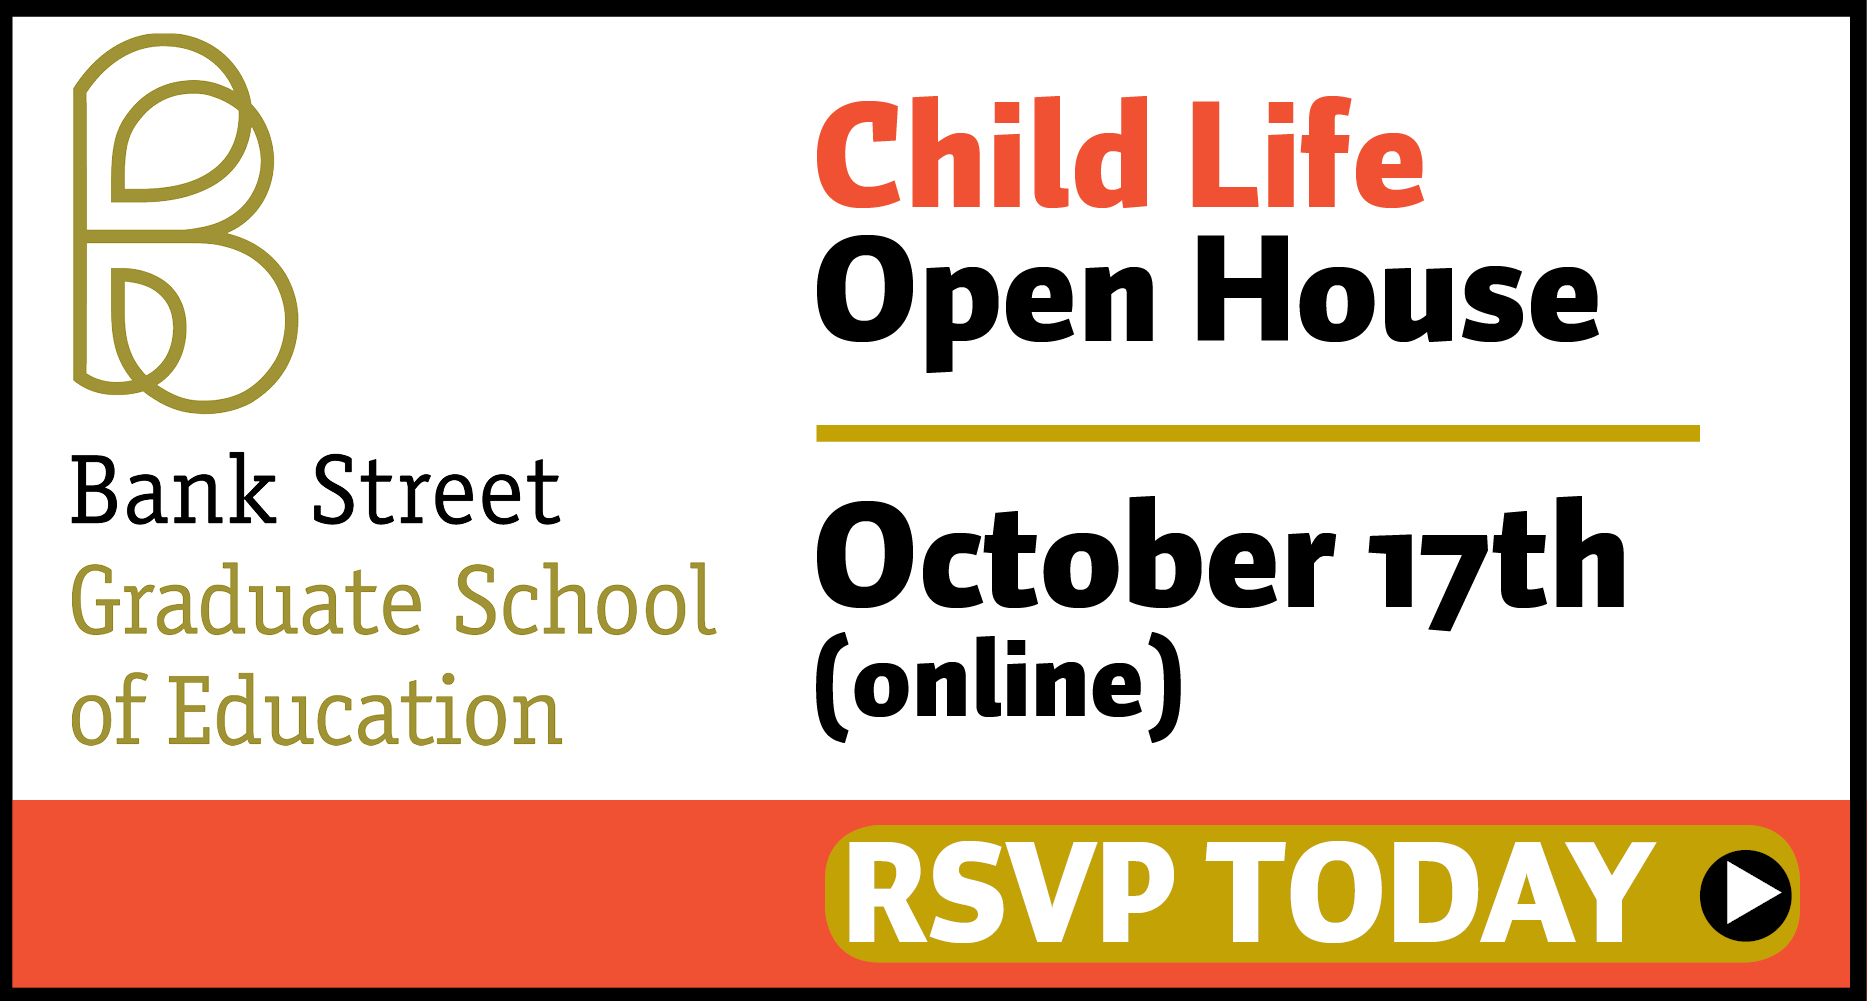 Child Life Open House 10-17-17